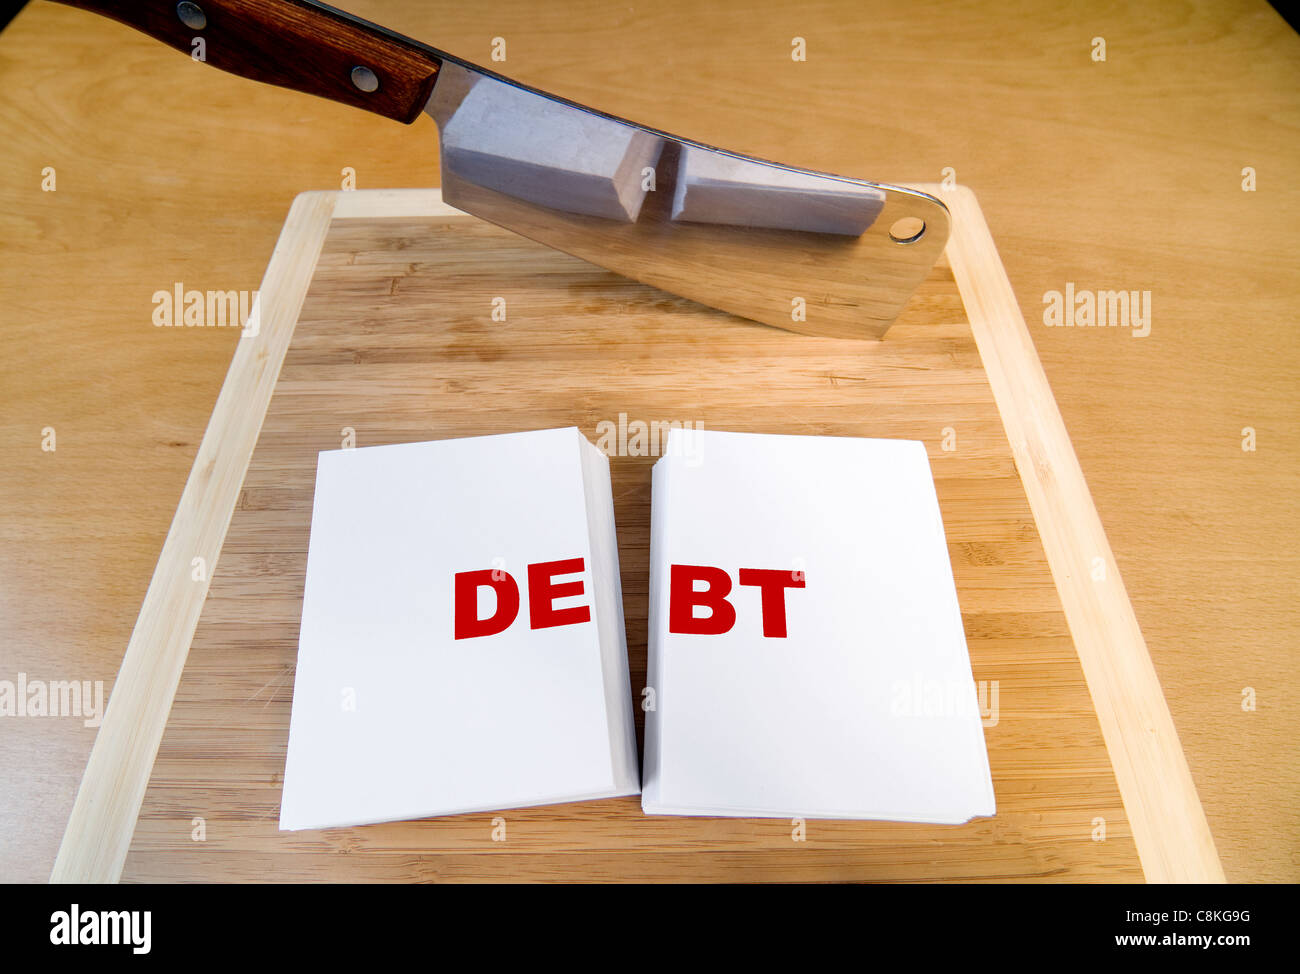 Cutting debt with a cleaver and cutting board. - Stock Image